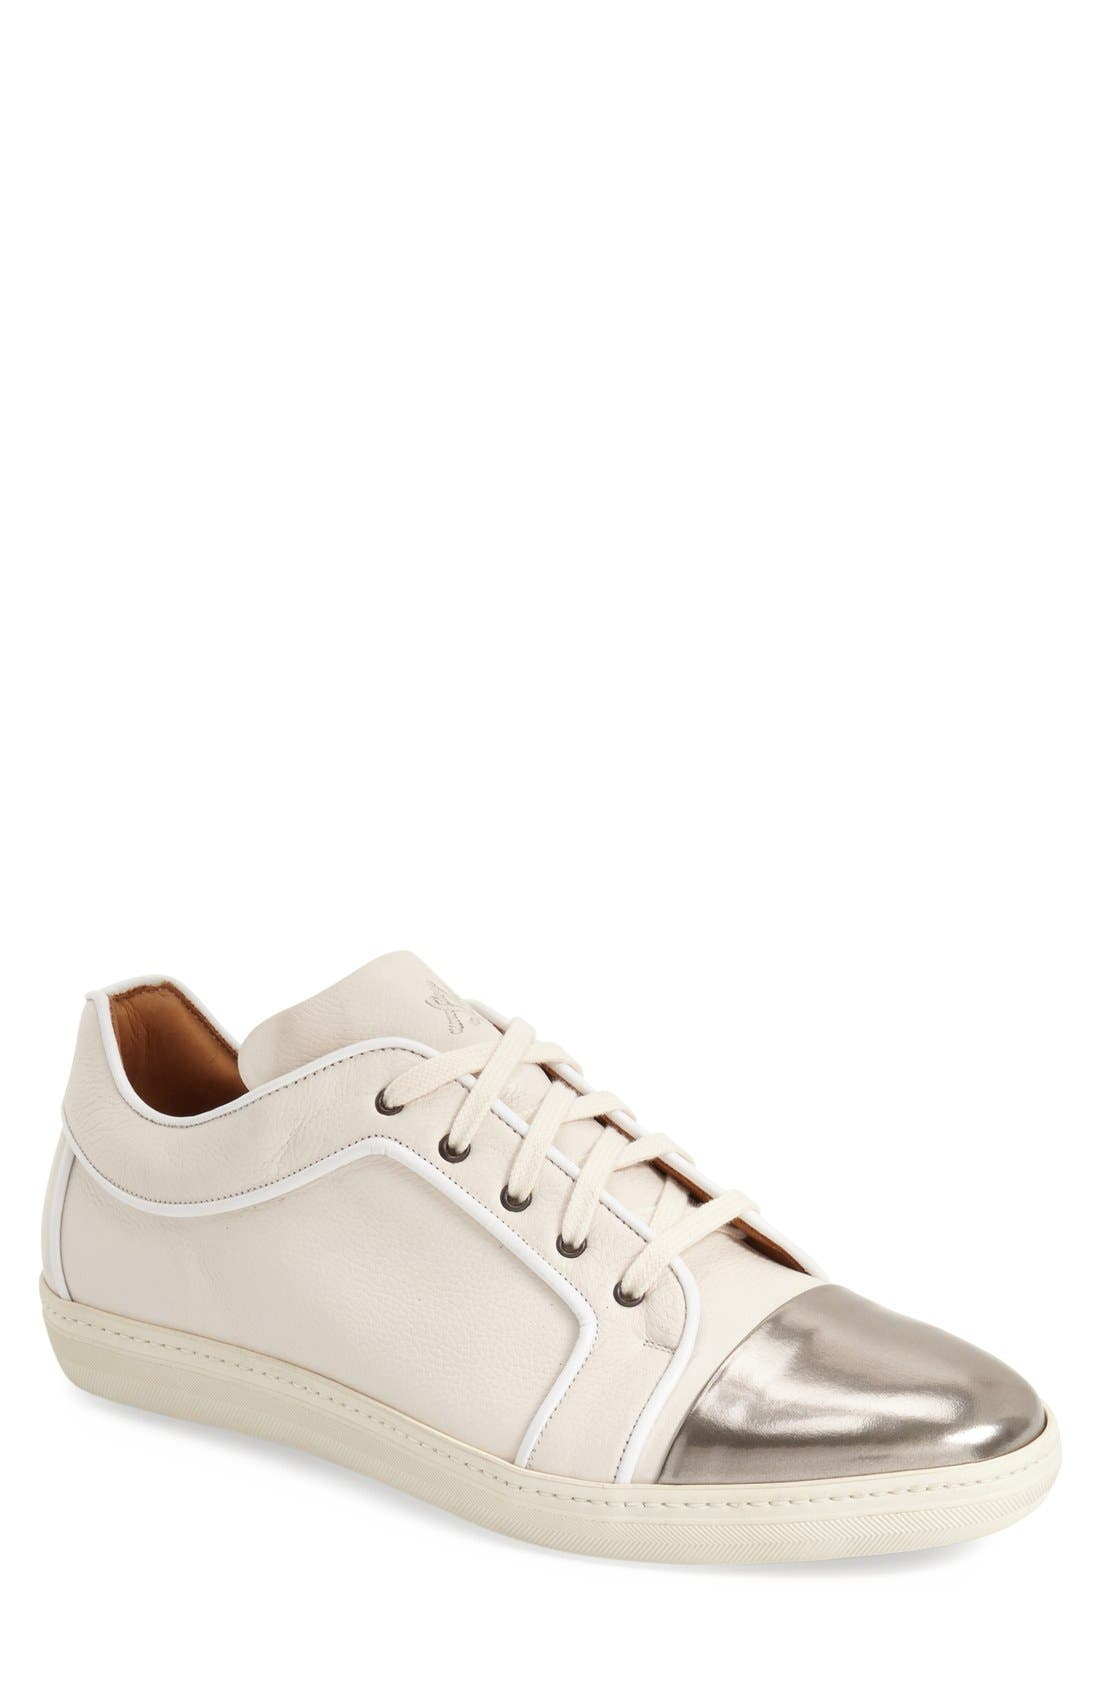 Alternate Image 1 Selected - Mezlan 'Valeri' Sneaker (Men)